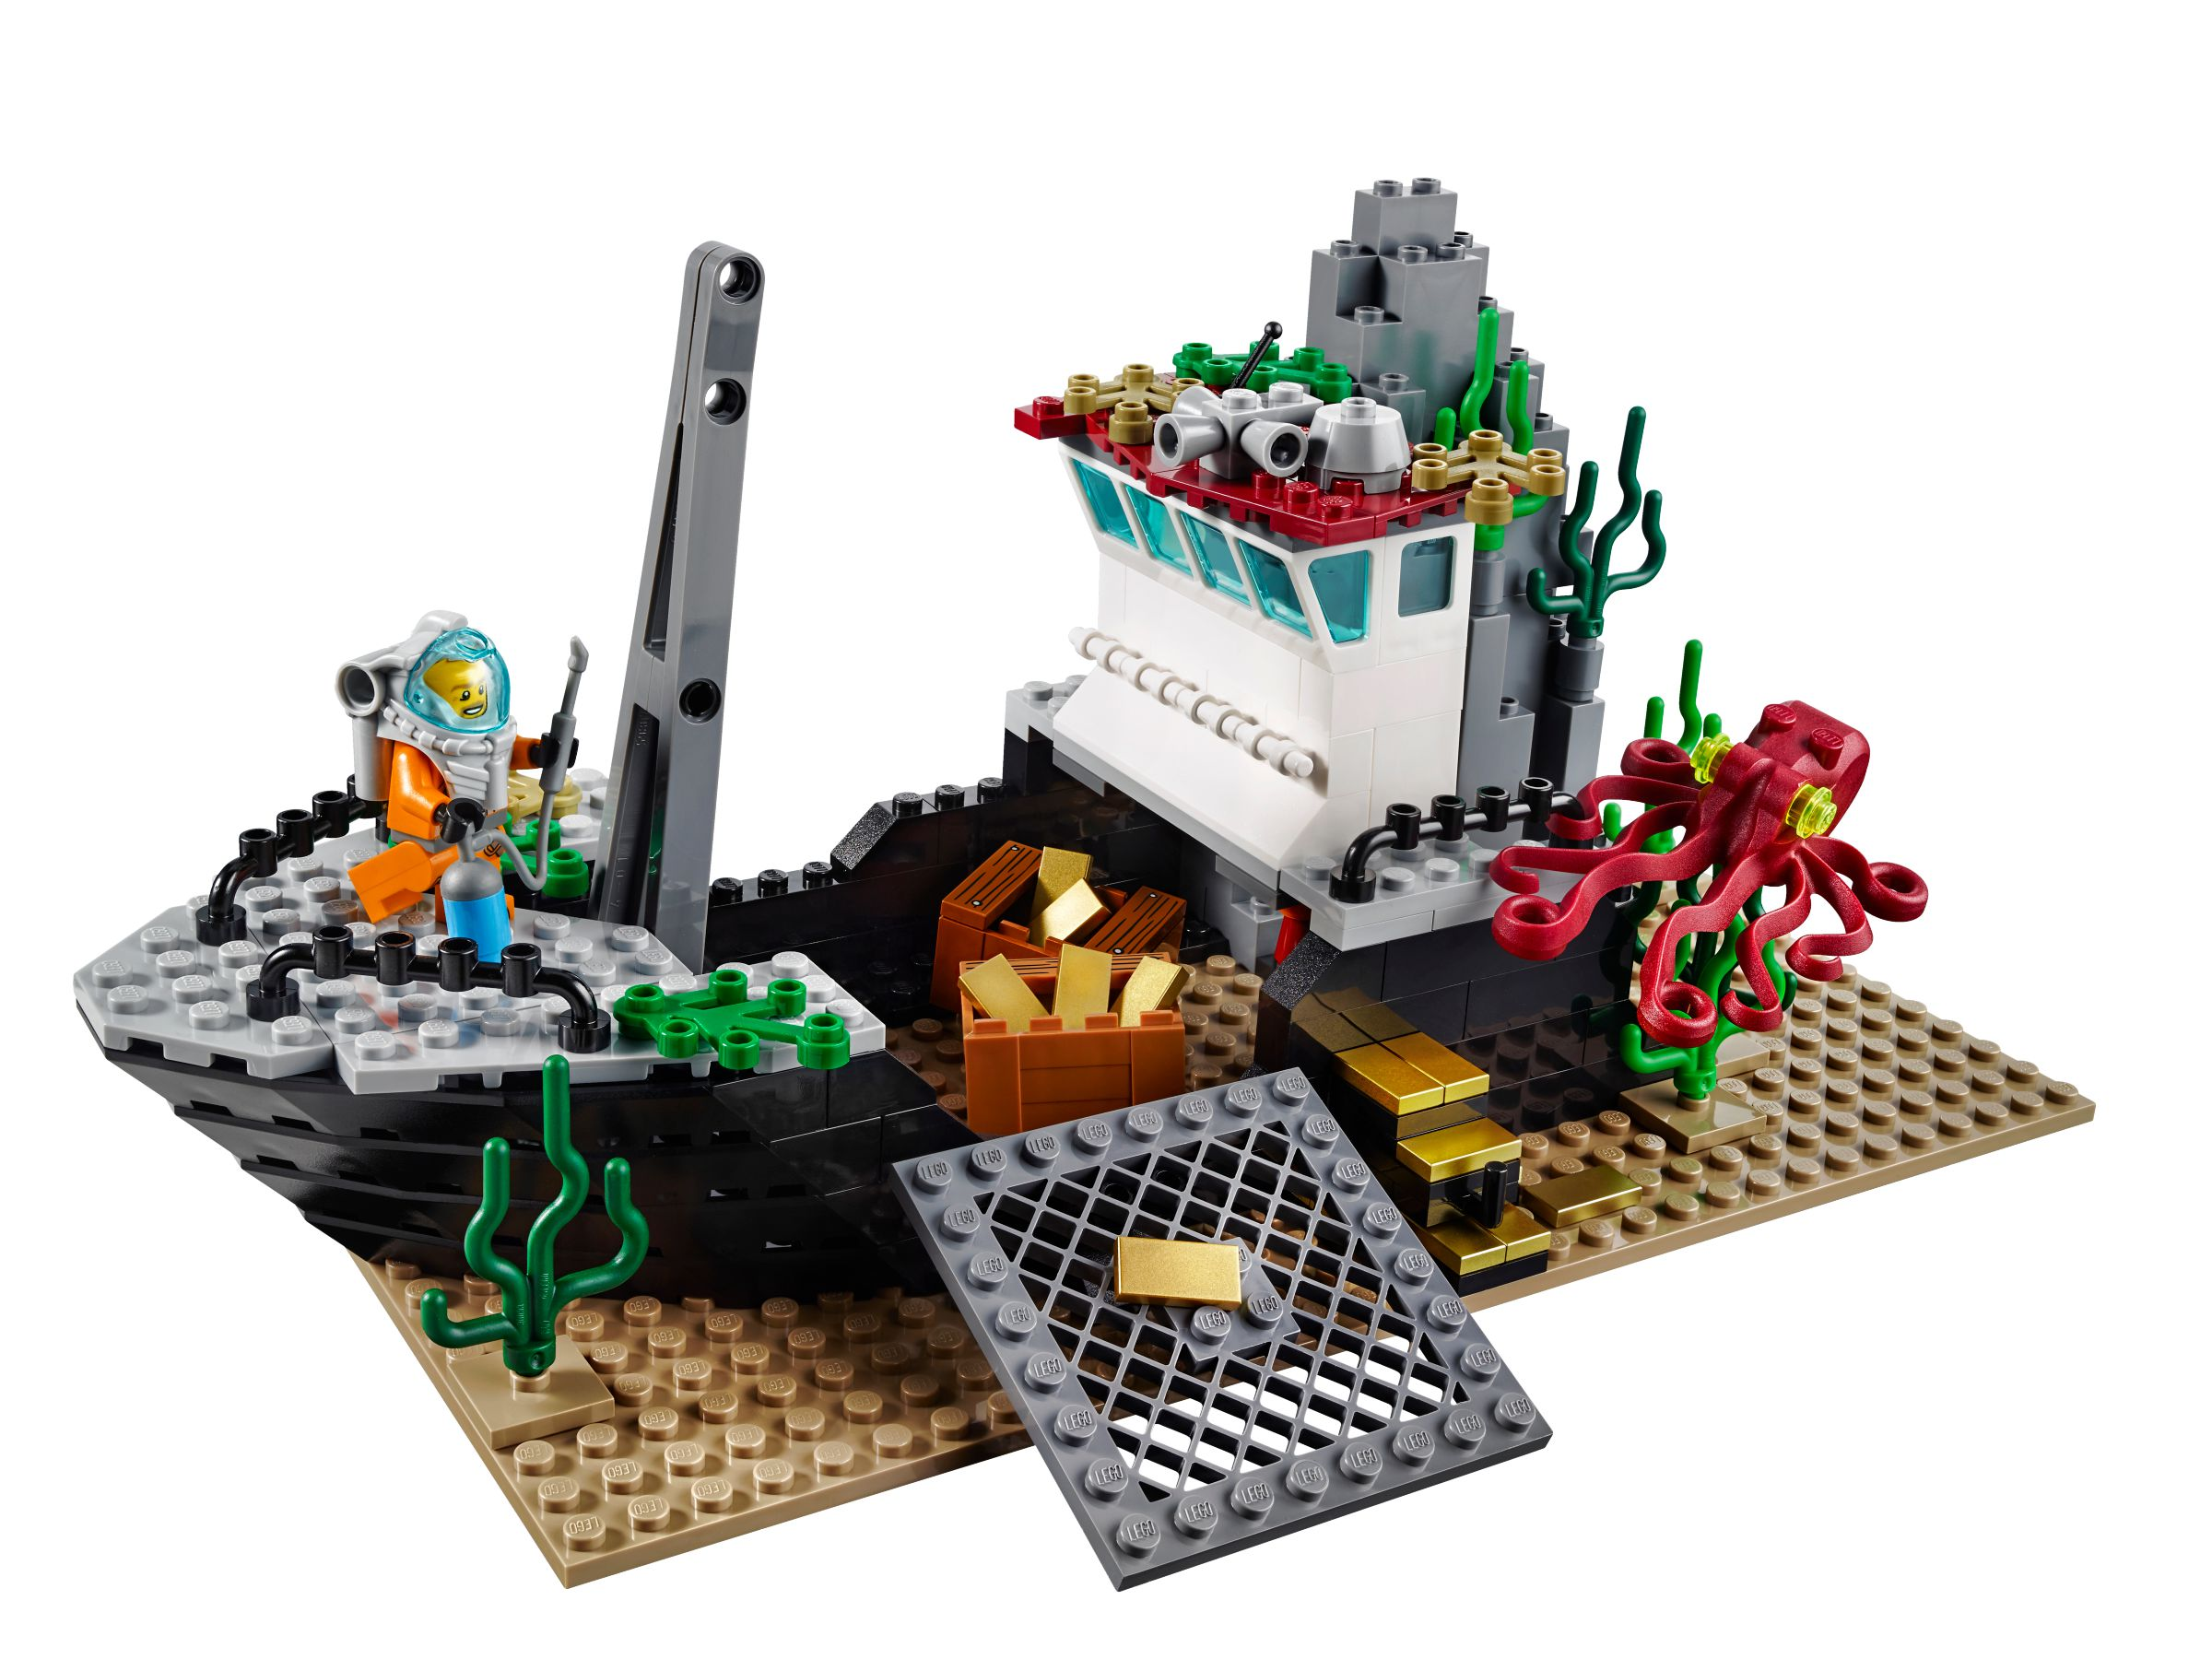 LEGO City 60095 Tiefsee-Expeditionsschiff LEGO_60095_alt5.jpg